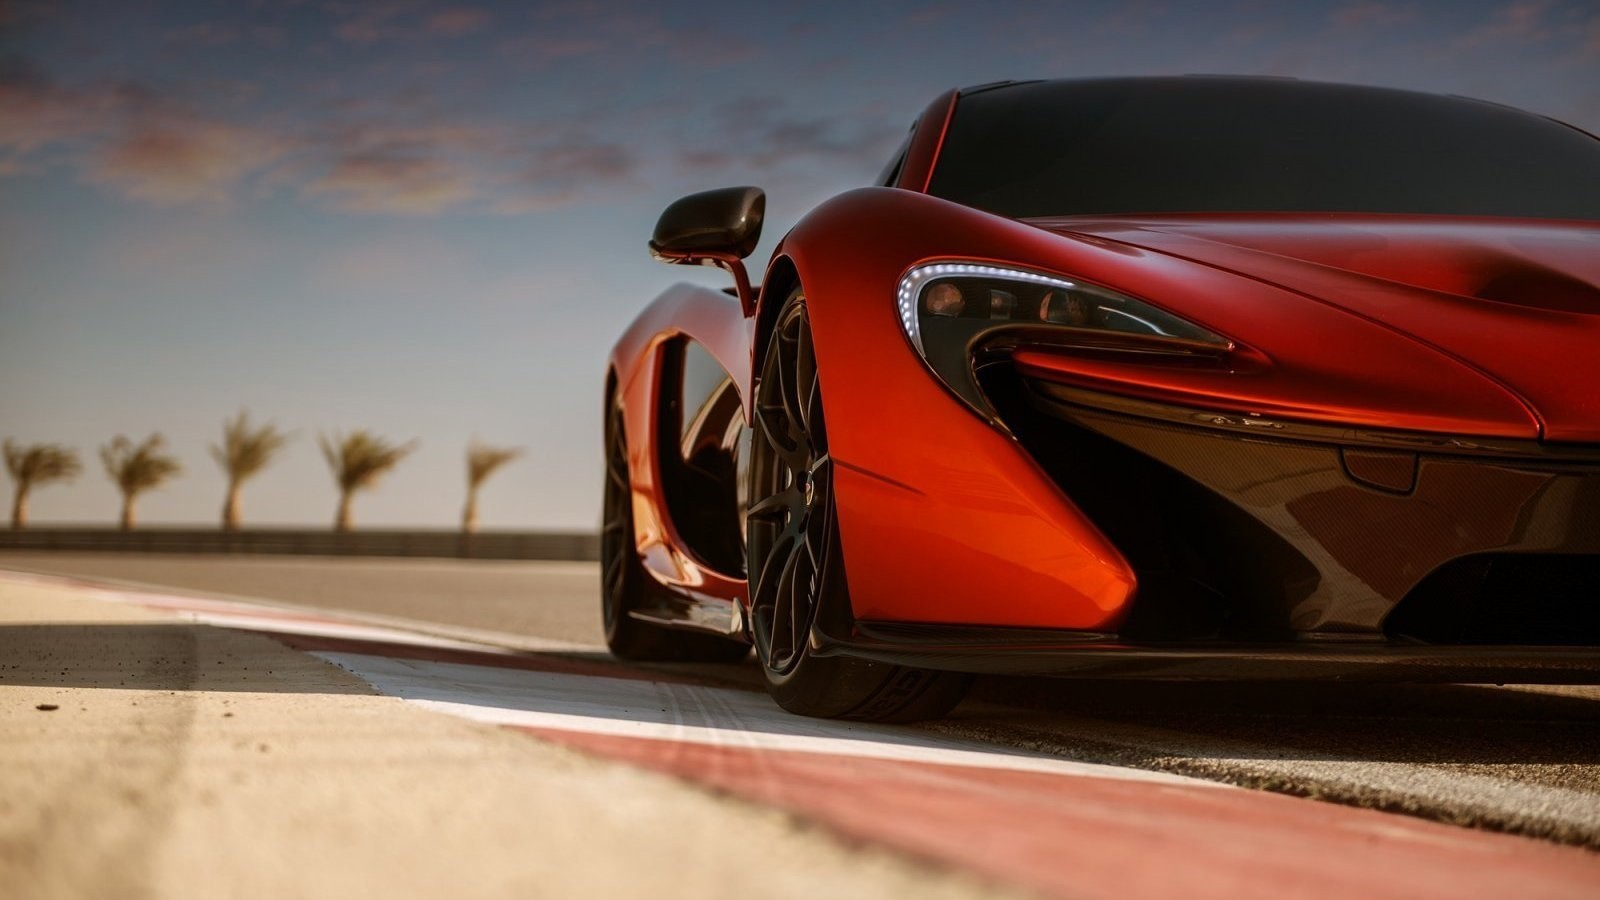 Mclaren P1 Wallpaper Hd >> Cars Mclaren P1 Wallpaper Allwallpaper In 6182 Pc En